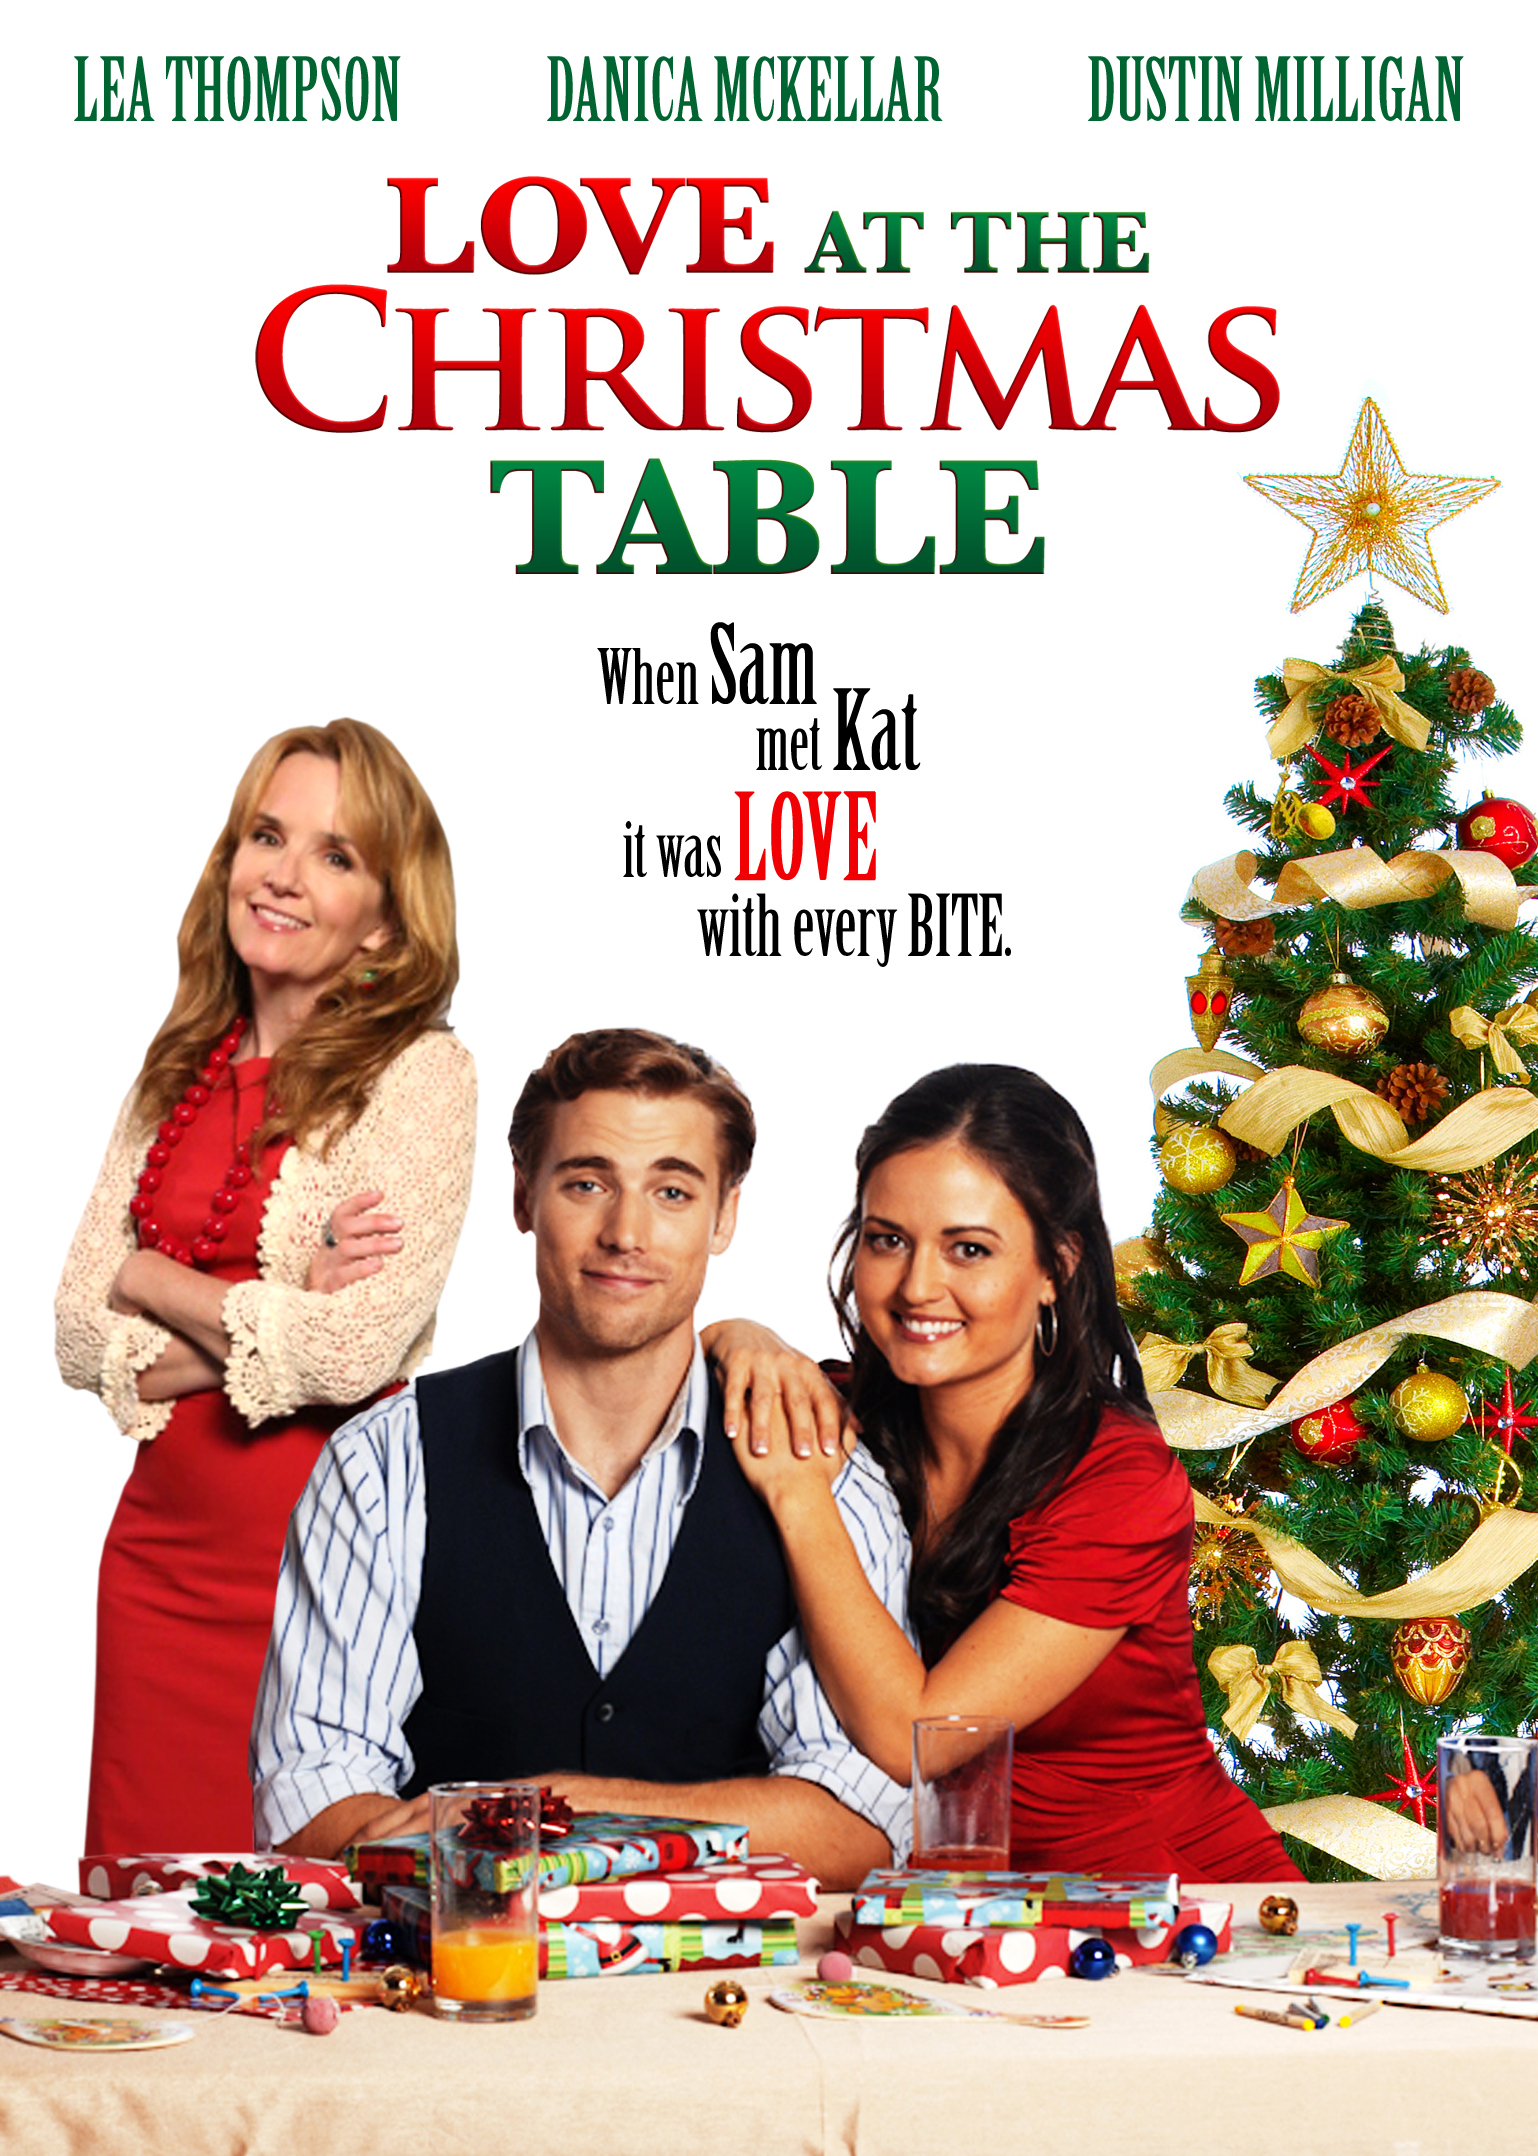 A Christmas Kiss Cast.Love At The Christmas Table Tv Movie 2012 Imdb